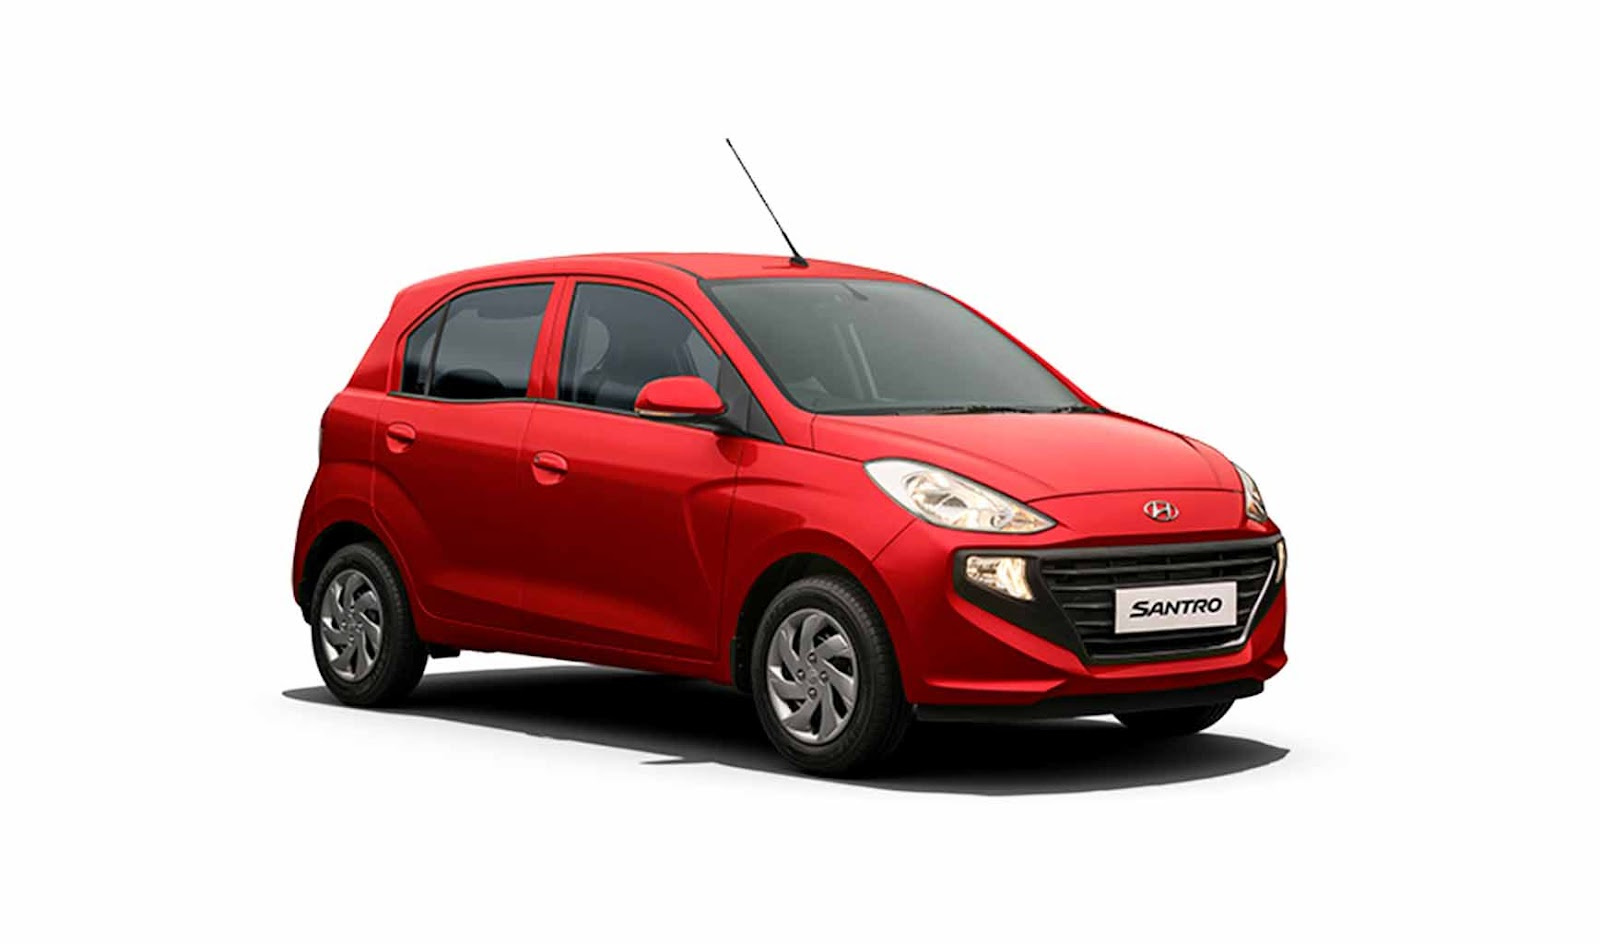 Best Quality Small Hatchback in India - Hyundai Santro